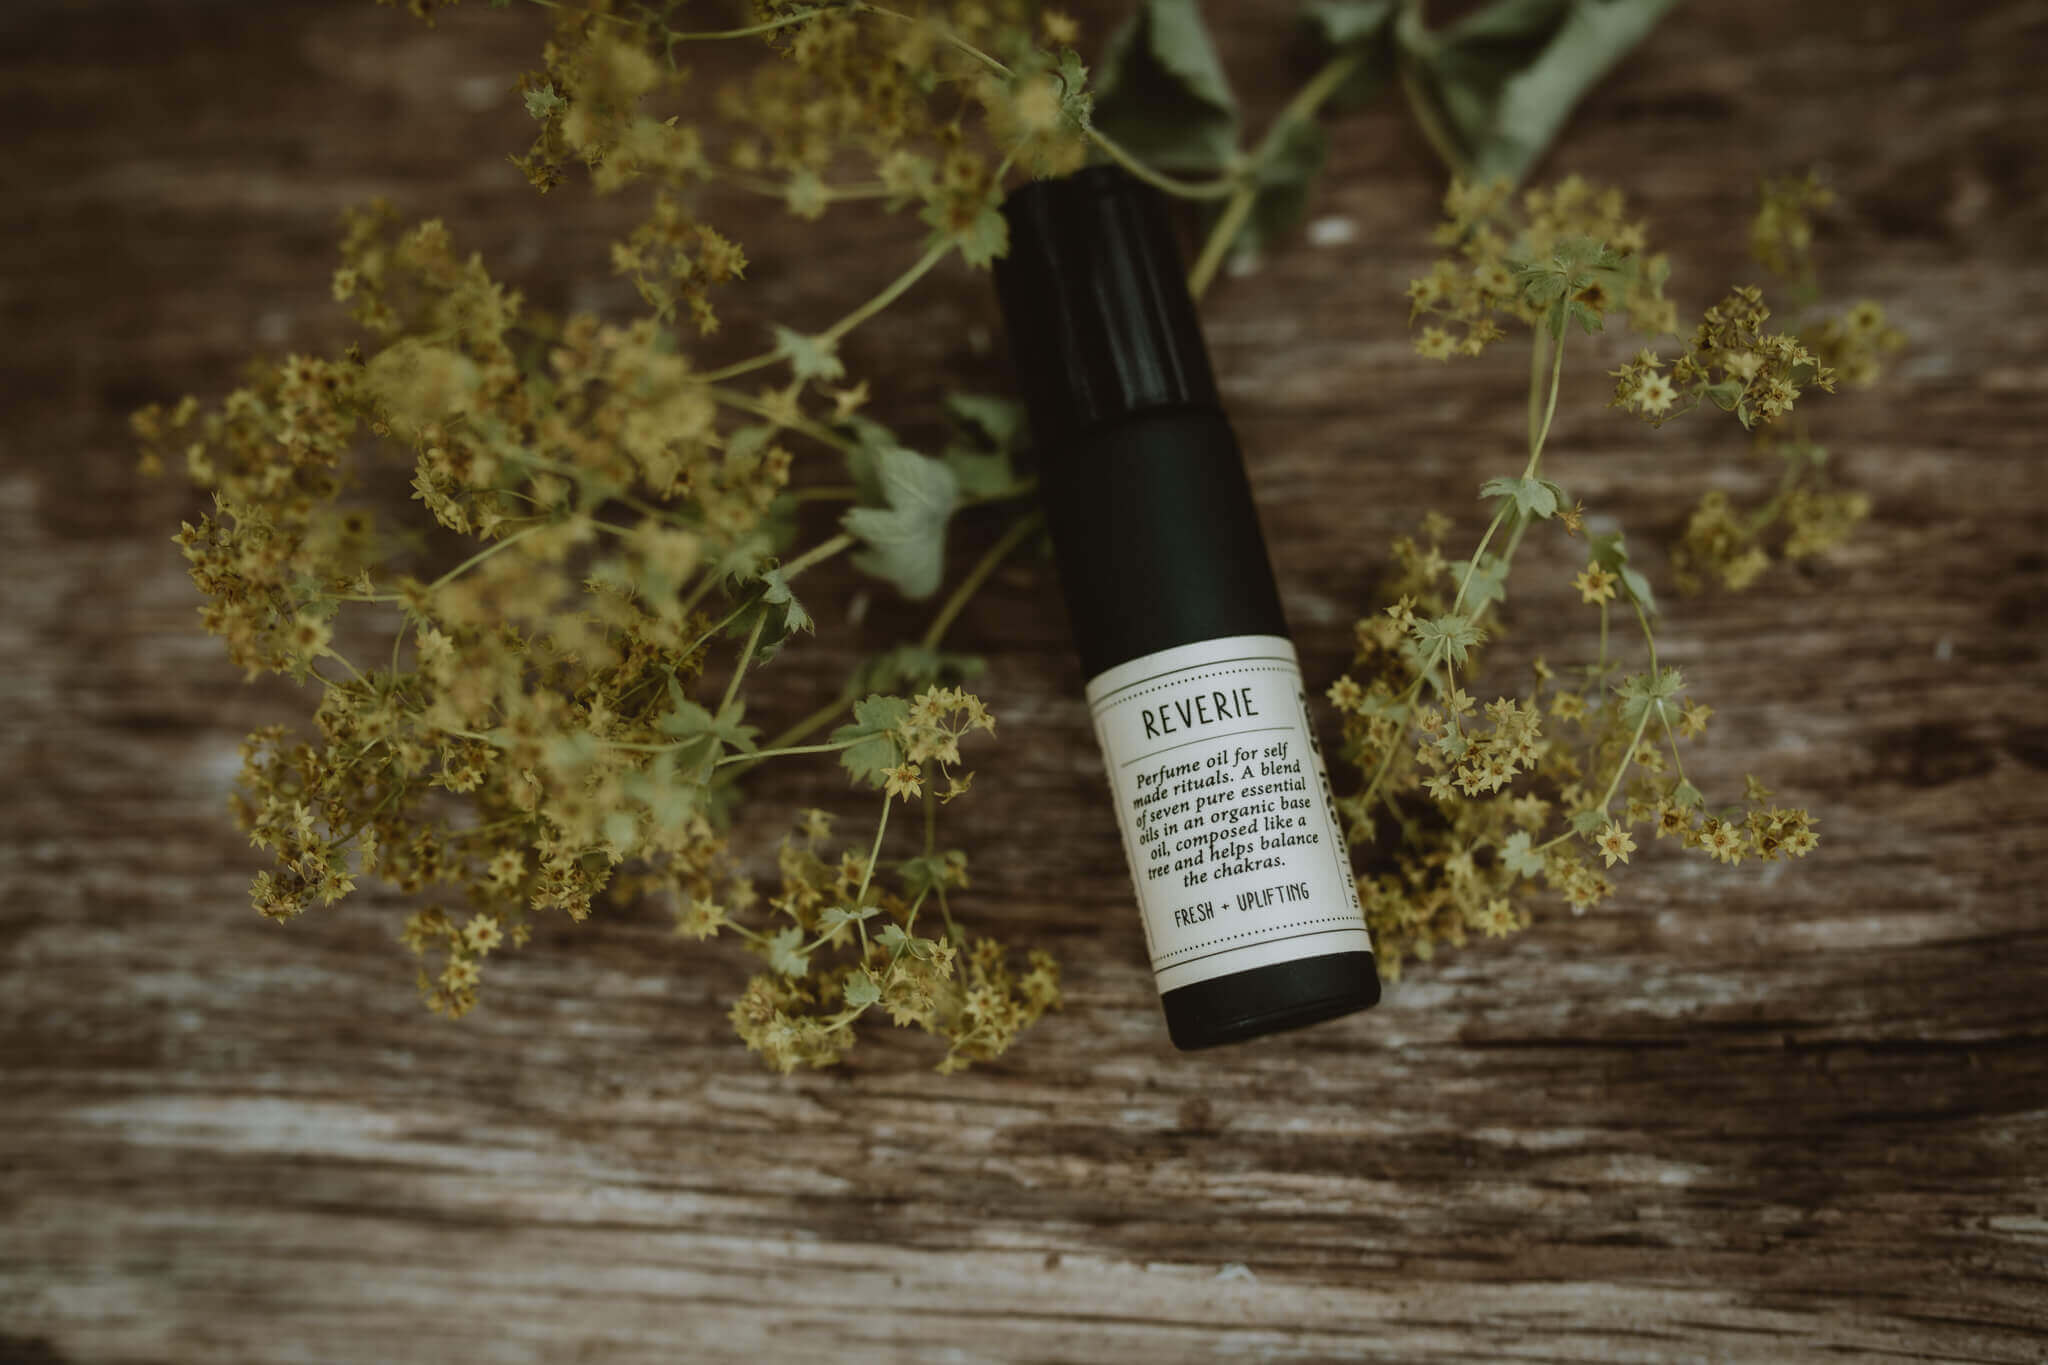 kindred and wild reverie perfume